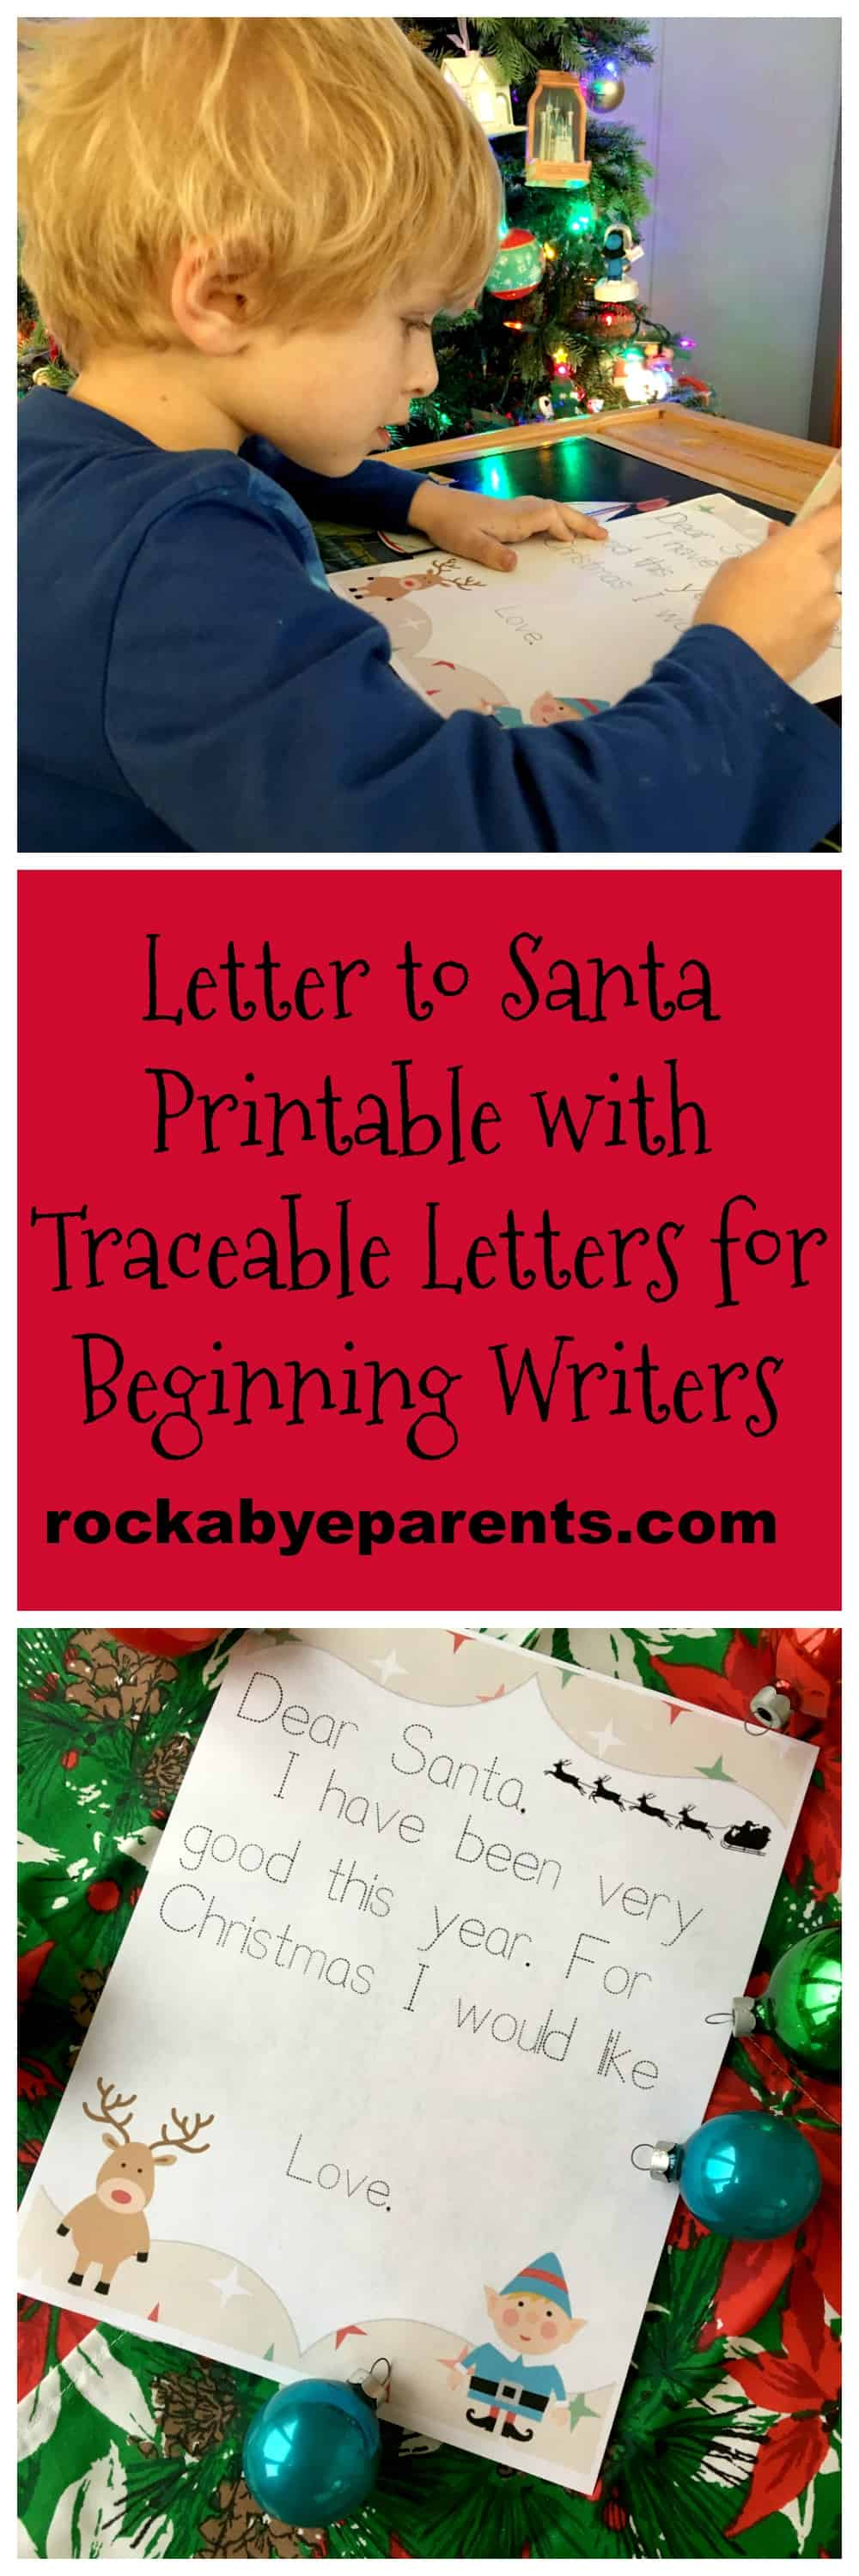 Letter to Santa Printable with Traceable Letters for Beginning Writers - rockabyeparents.com